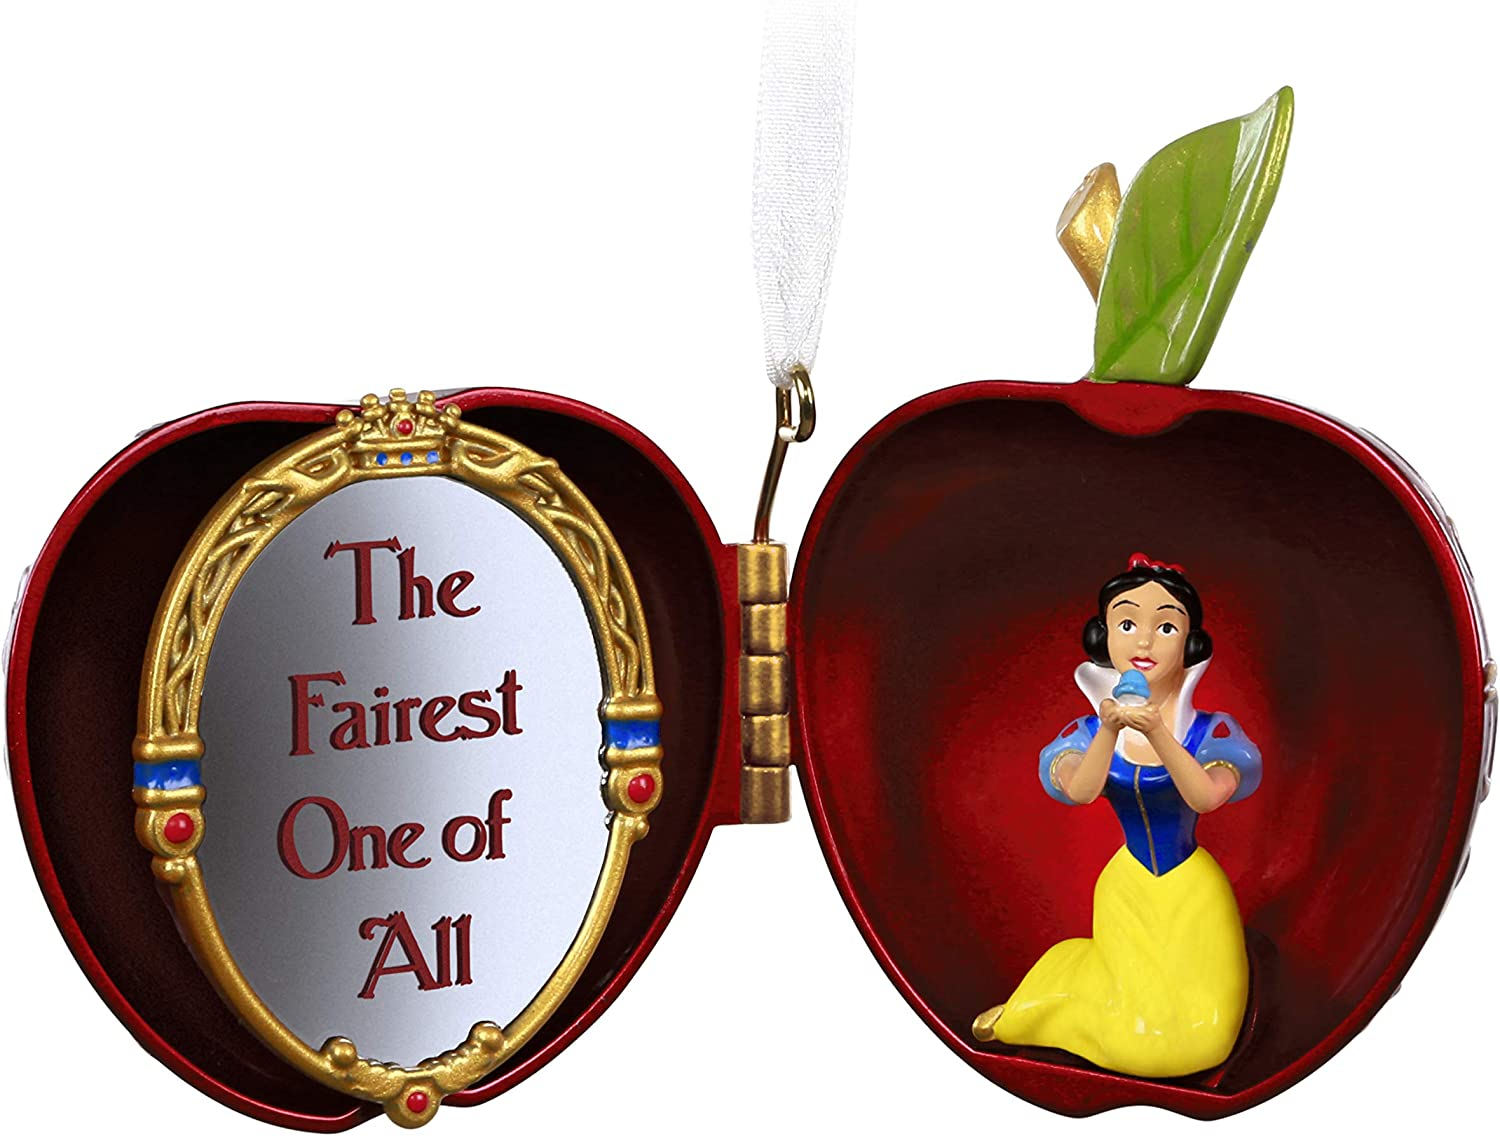 Hallmark Keepsake Christmas 2019 Year Dated Disney Snow White and The Seven Dwarfs The Fairest One of All Apple Ornament, Metal